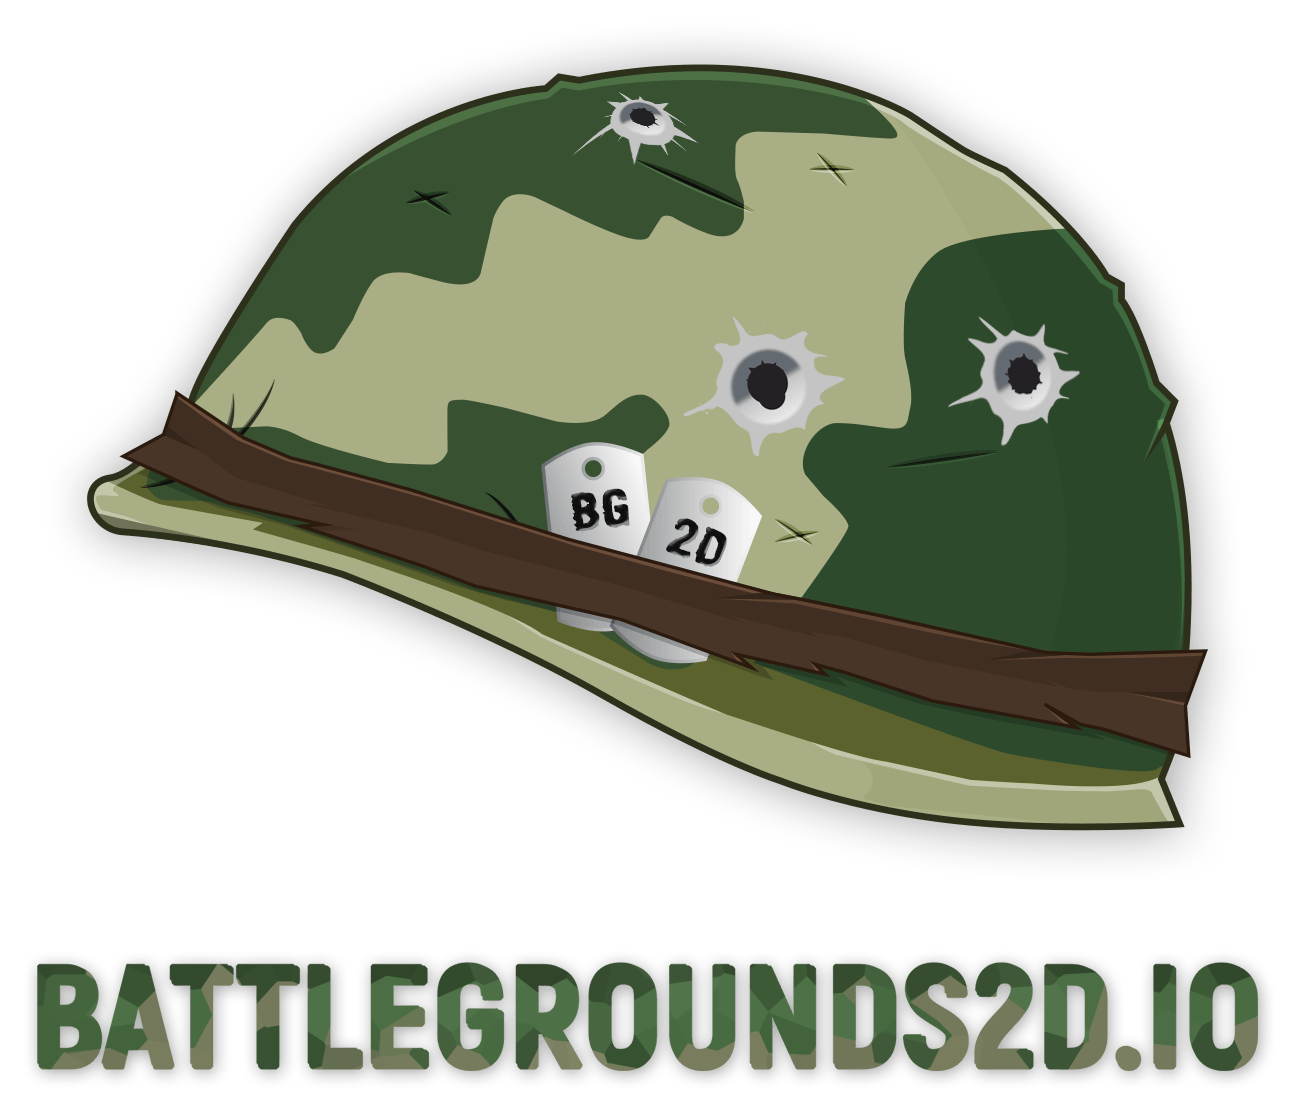 Battlegrounds2D IO - Real-Time Battle Royale 2D Multiplayer Game